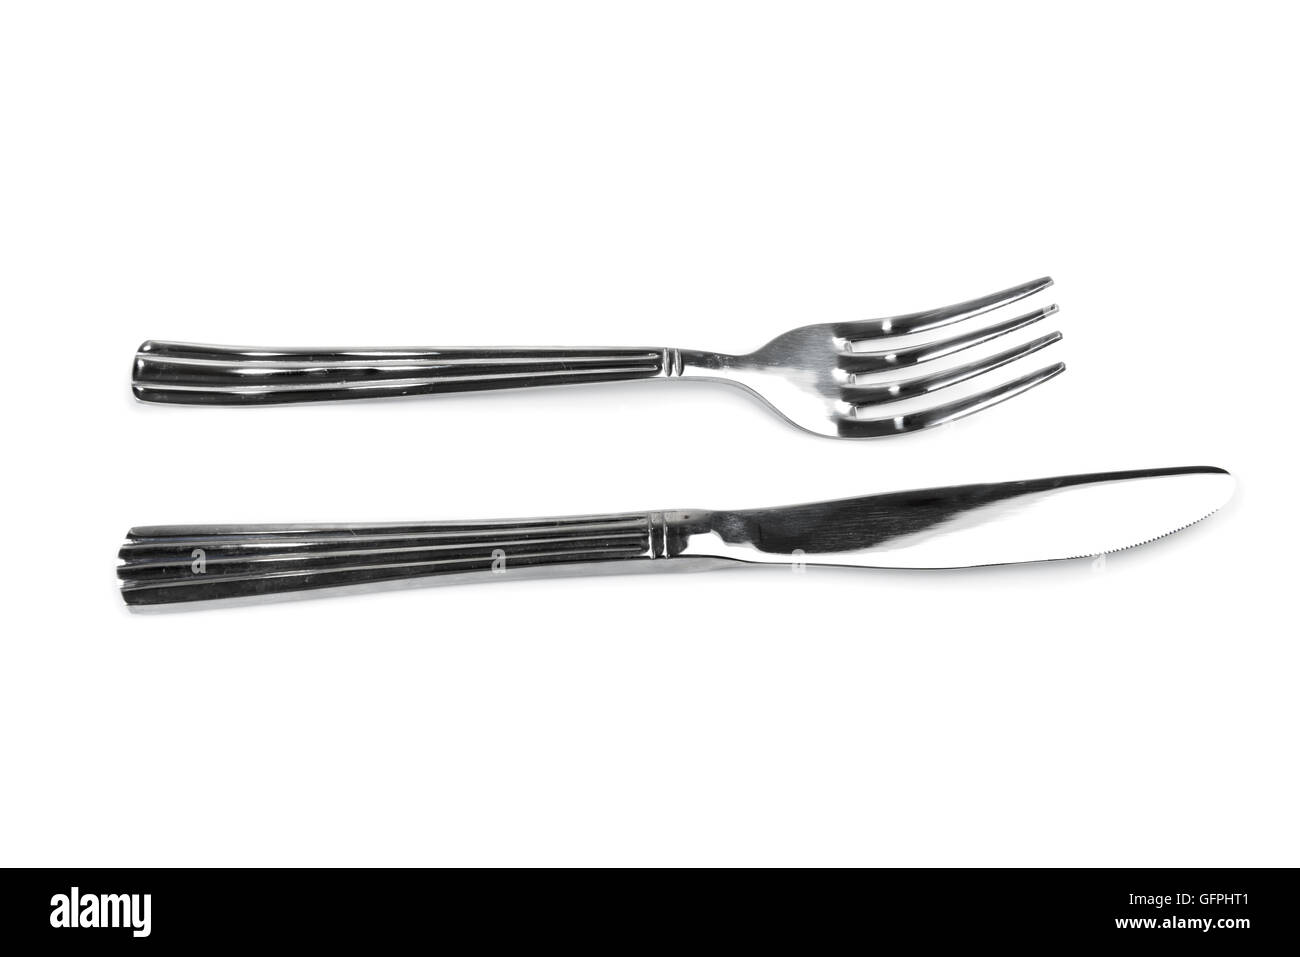 Table knife and fork isolated over white background - Stock Image